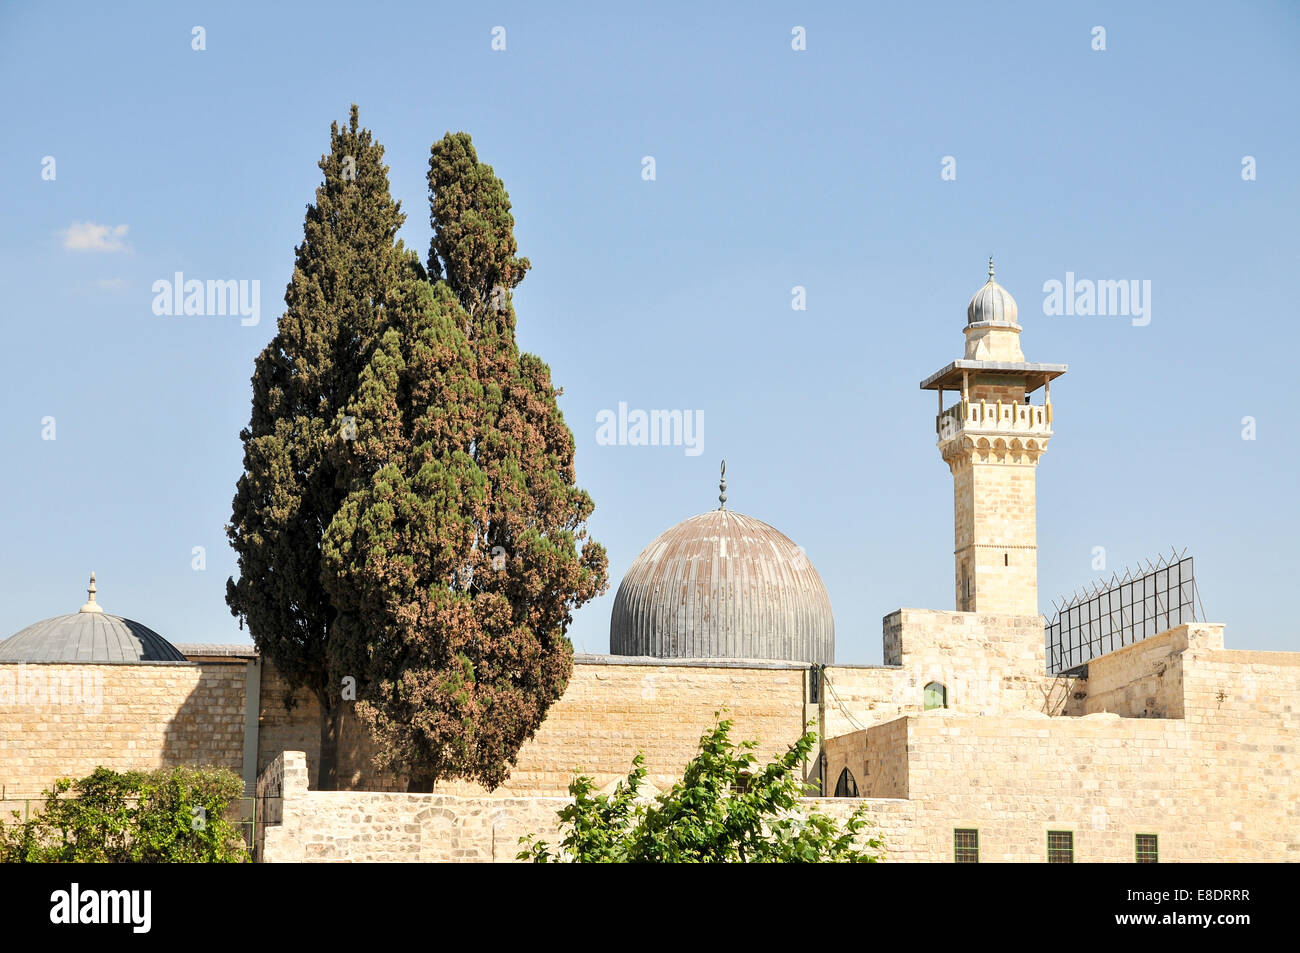 Israel, Jerusalem, Haram esh Sharif (Temple Mount) View of the southwestern corner. The minaret and dome of the - Stock Image